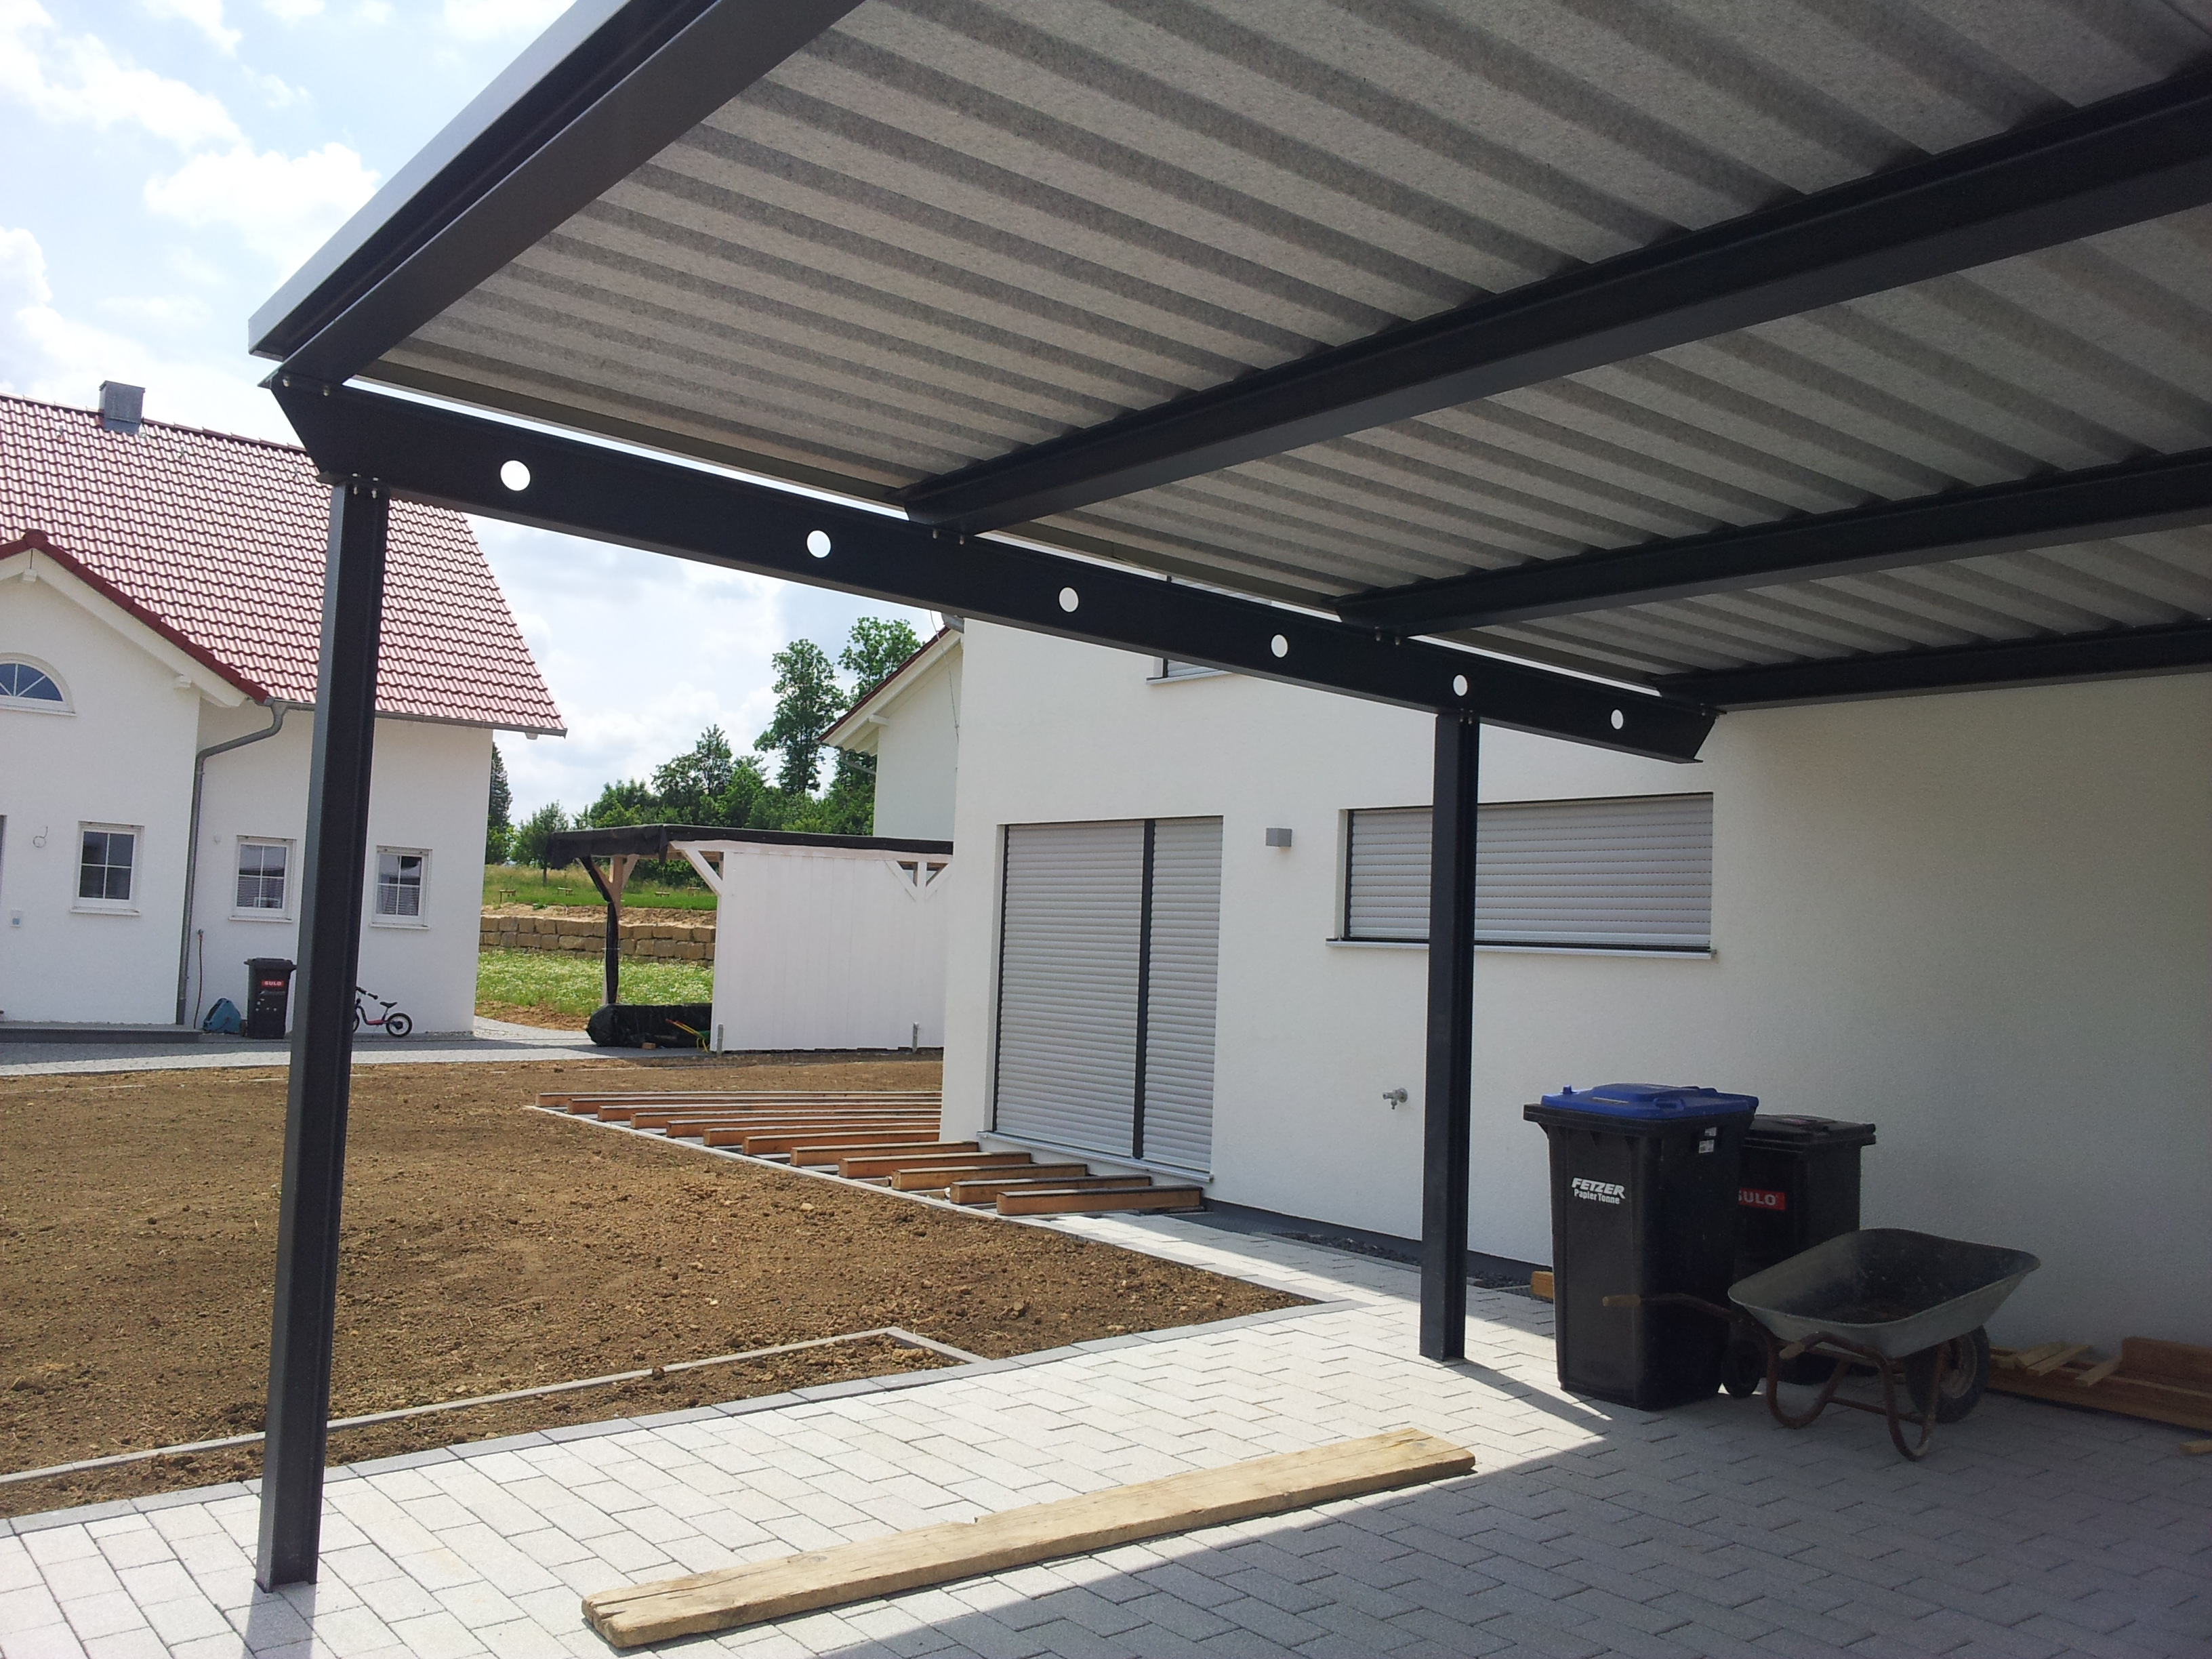 carport seitenwand mit rhombus verkleidung stahlbau n gele. Black Bedroom Furniture Sets. Home Design Ideas